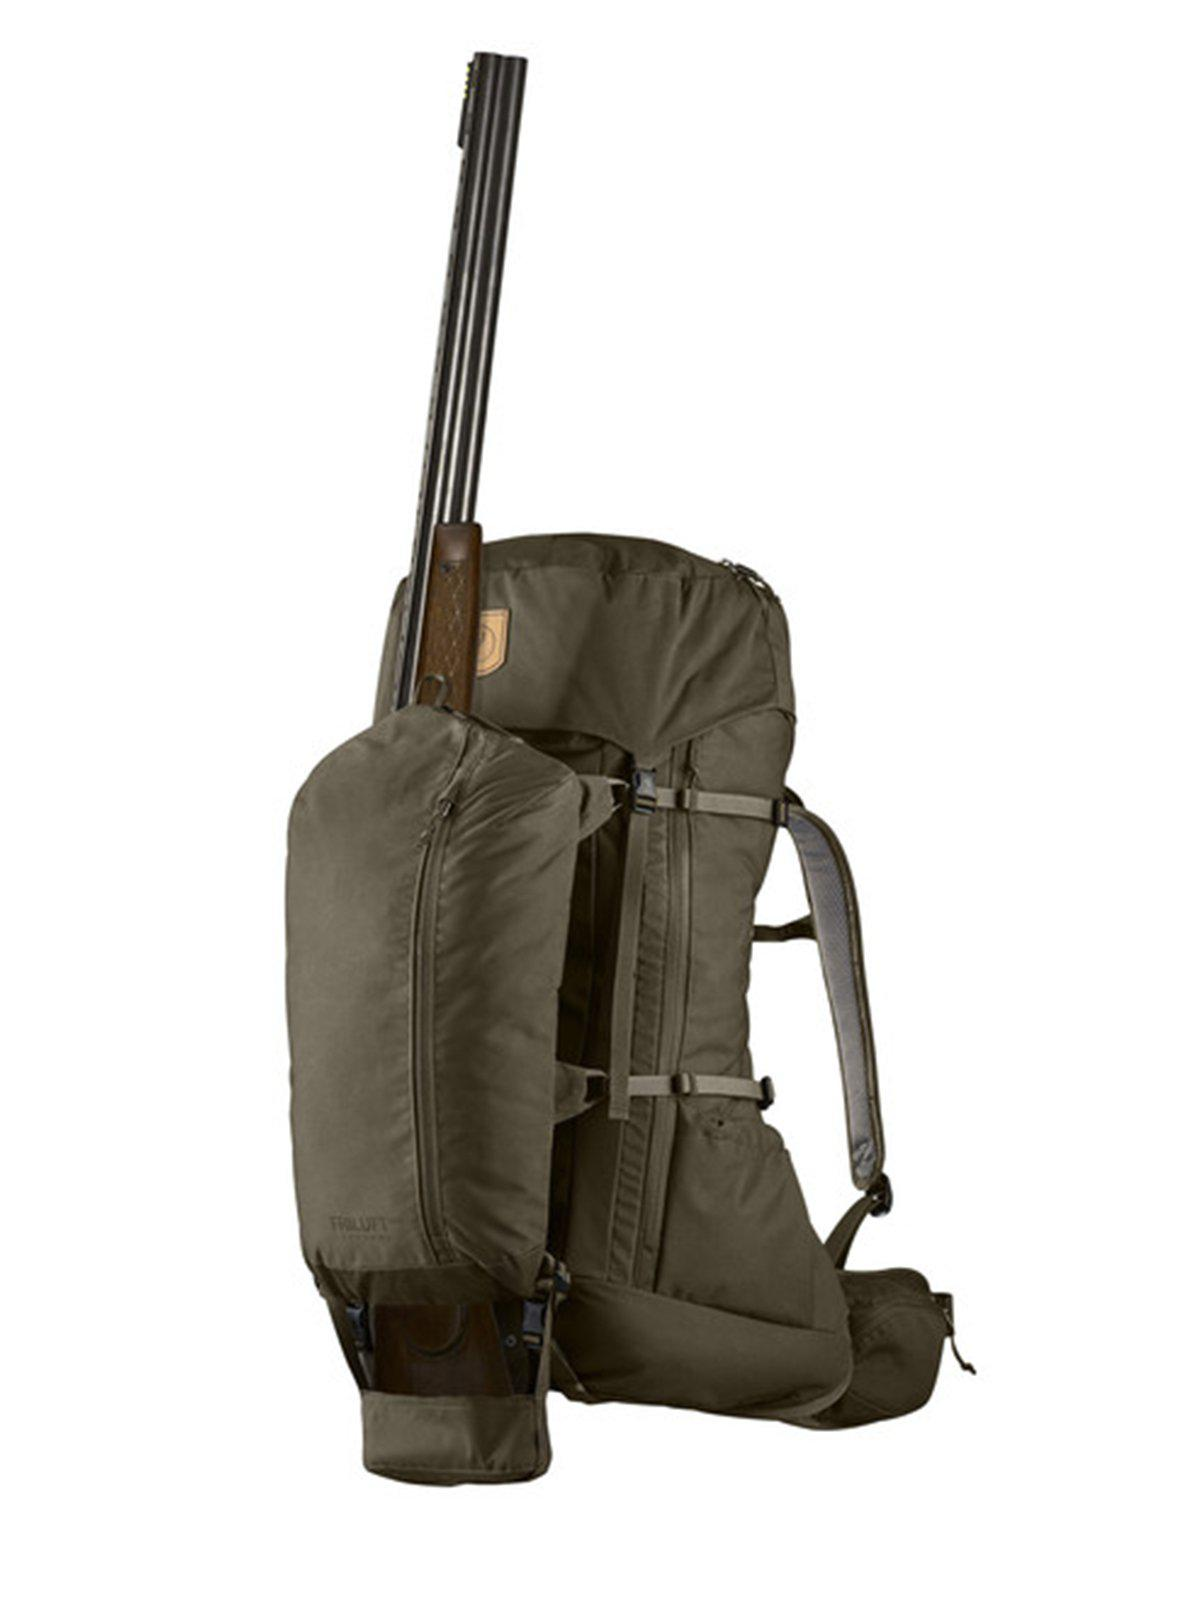 Fjallraven Lappland Friluft 45 Dark Olive Hunting Backpack - MORE by Morello Indonesia